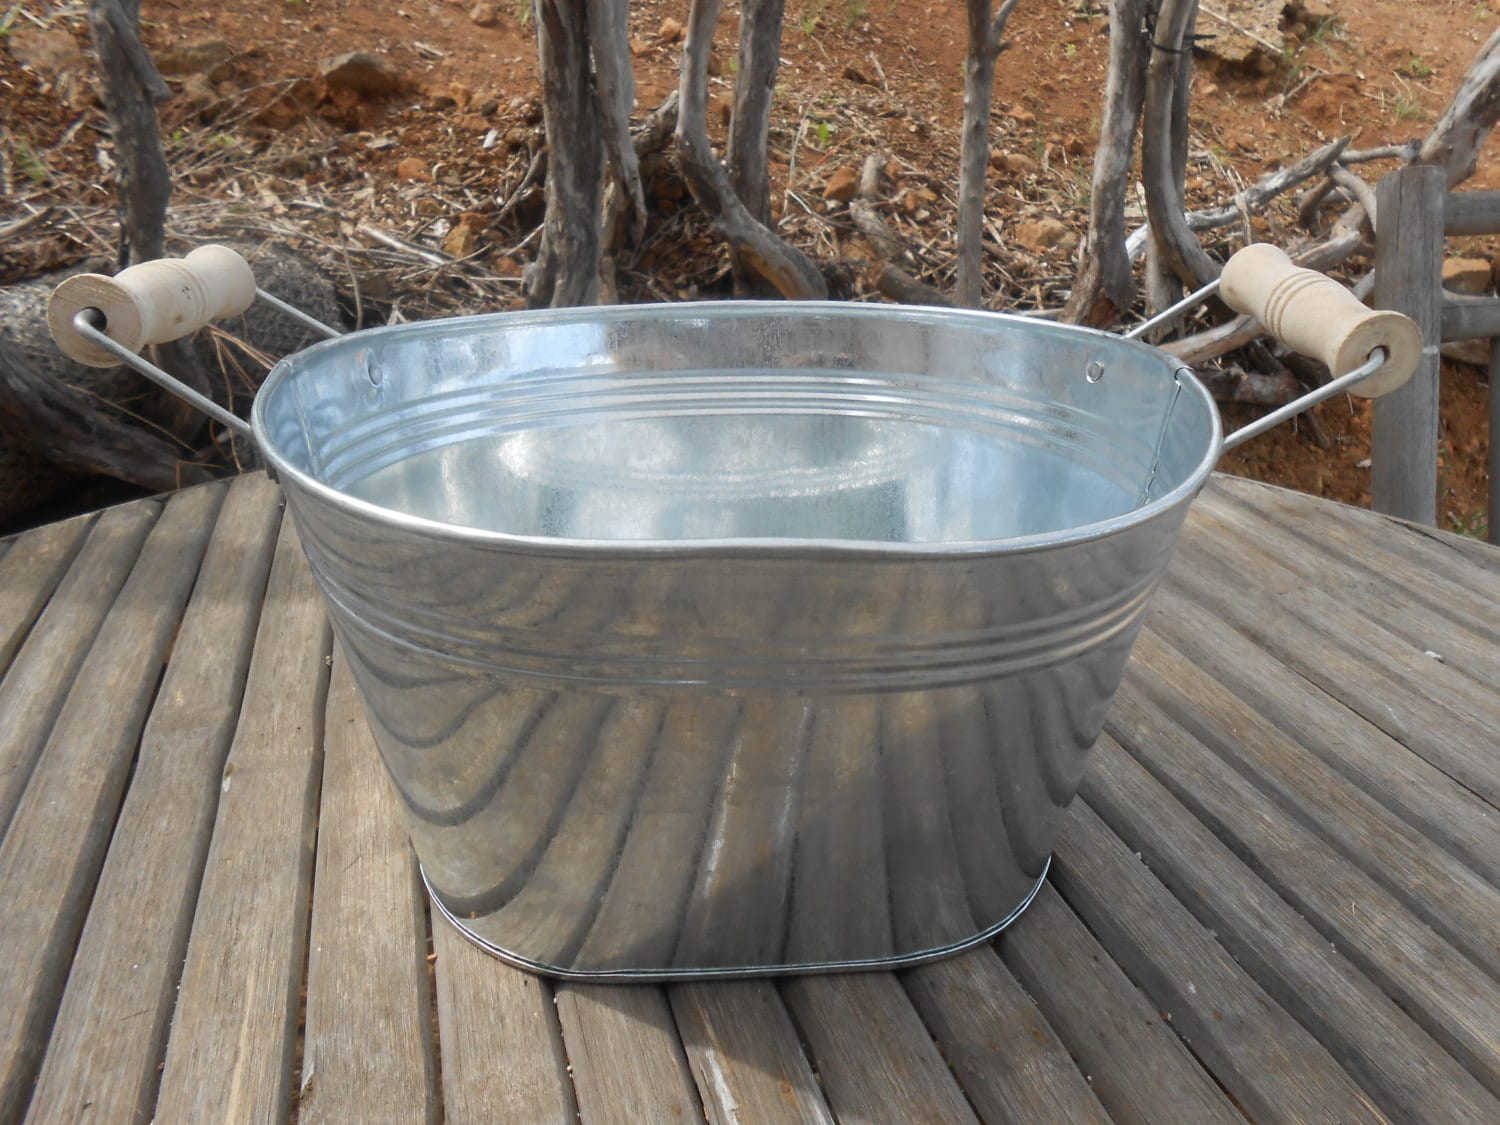 Large Rustic Oval Galvanized Tub Bucket 10 X 8 By